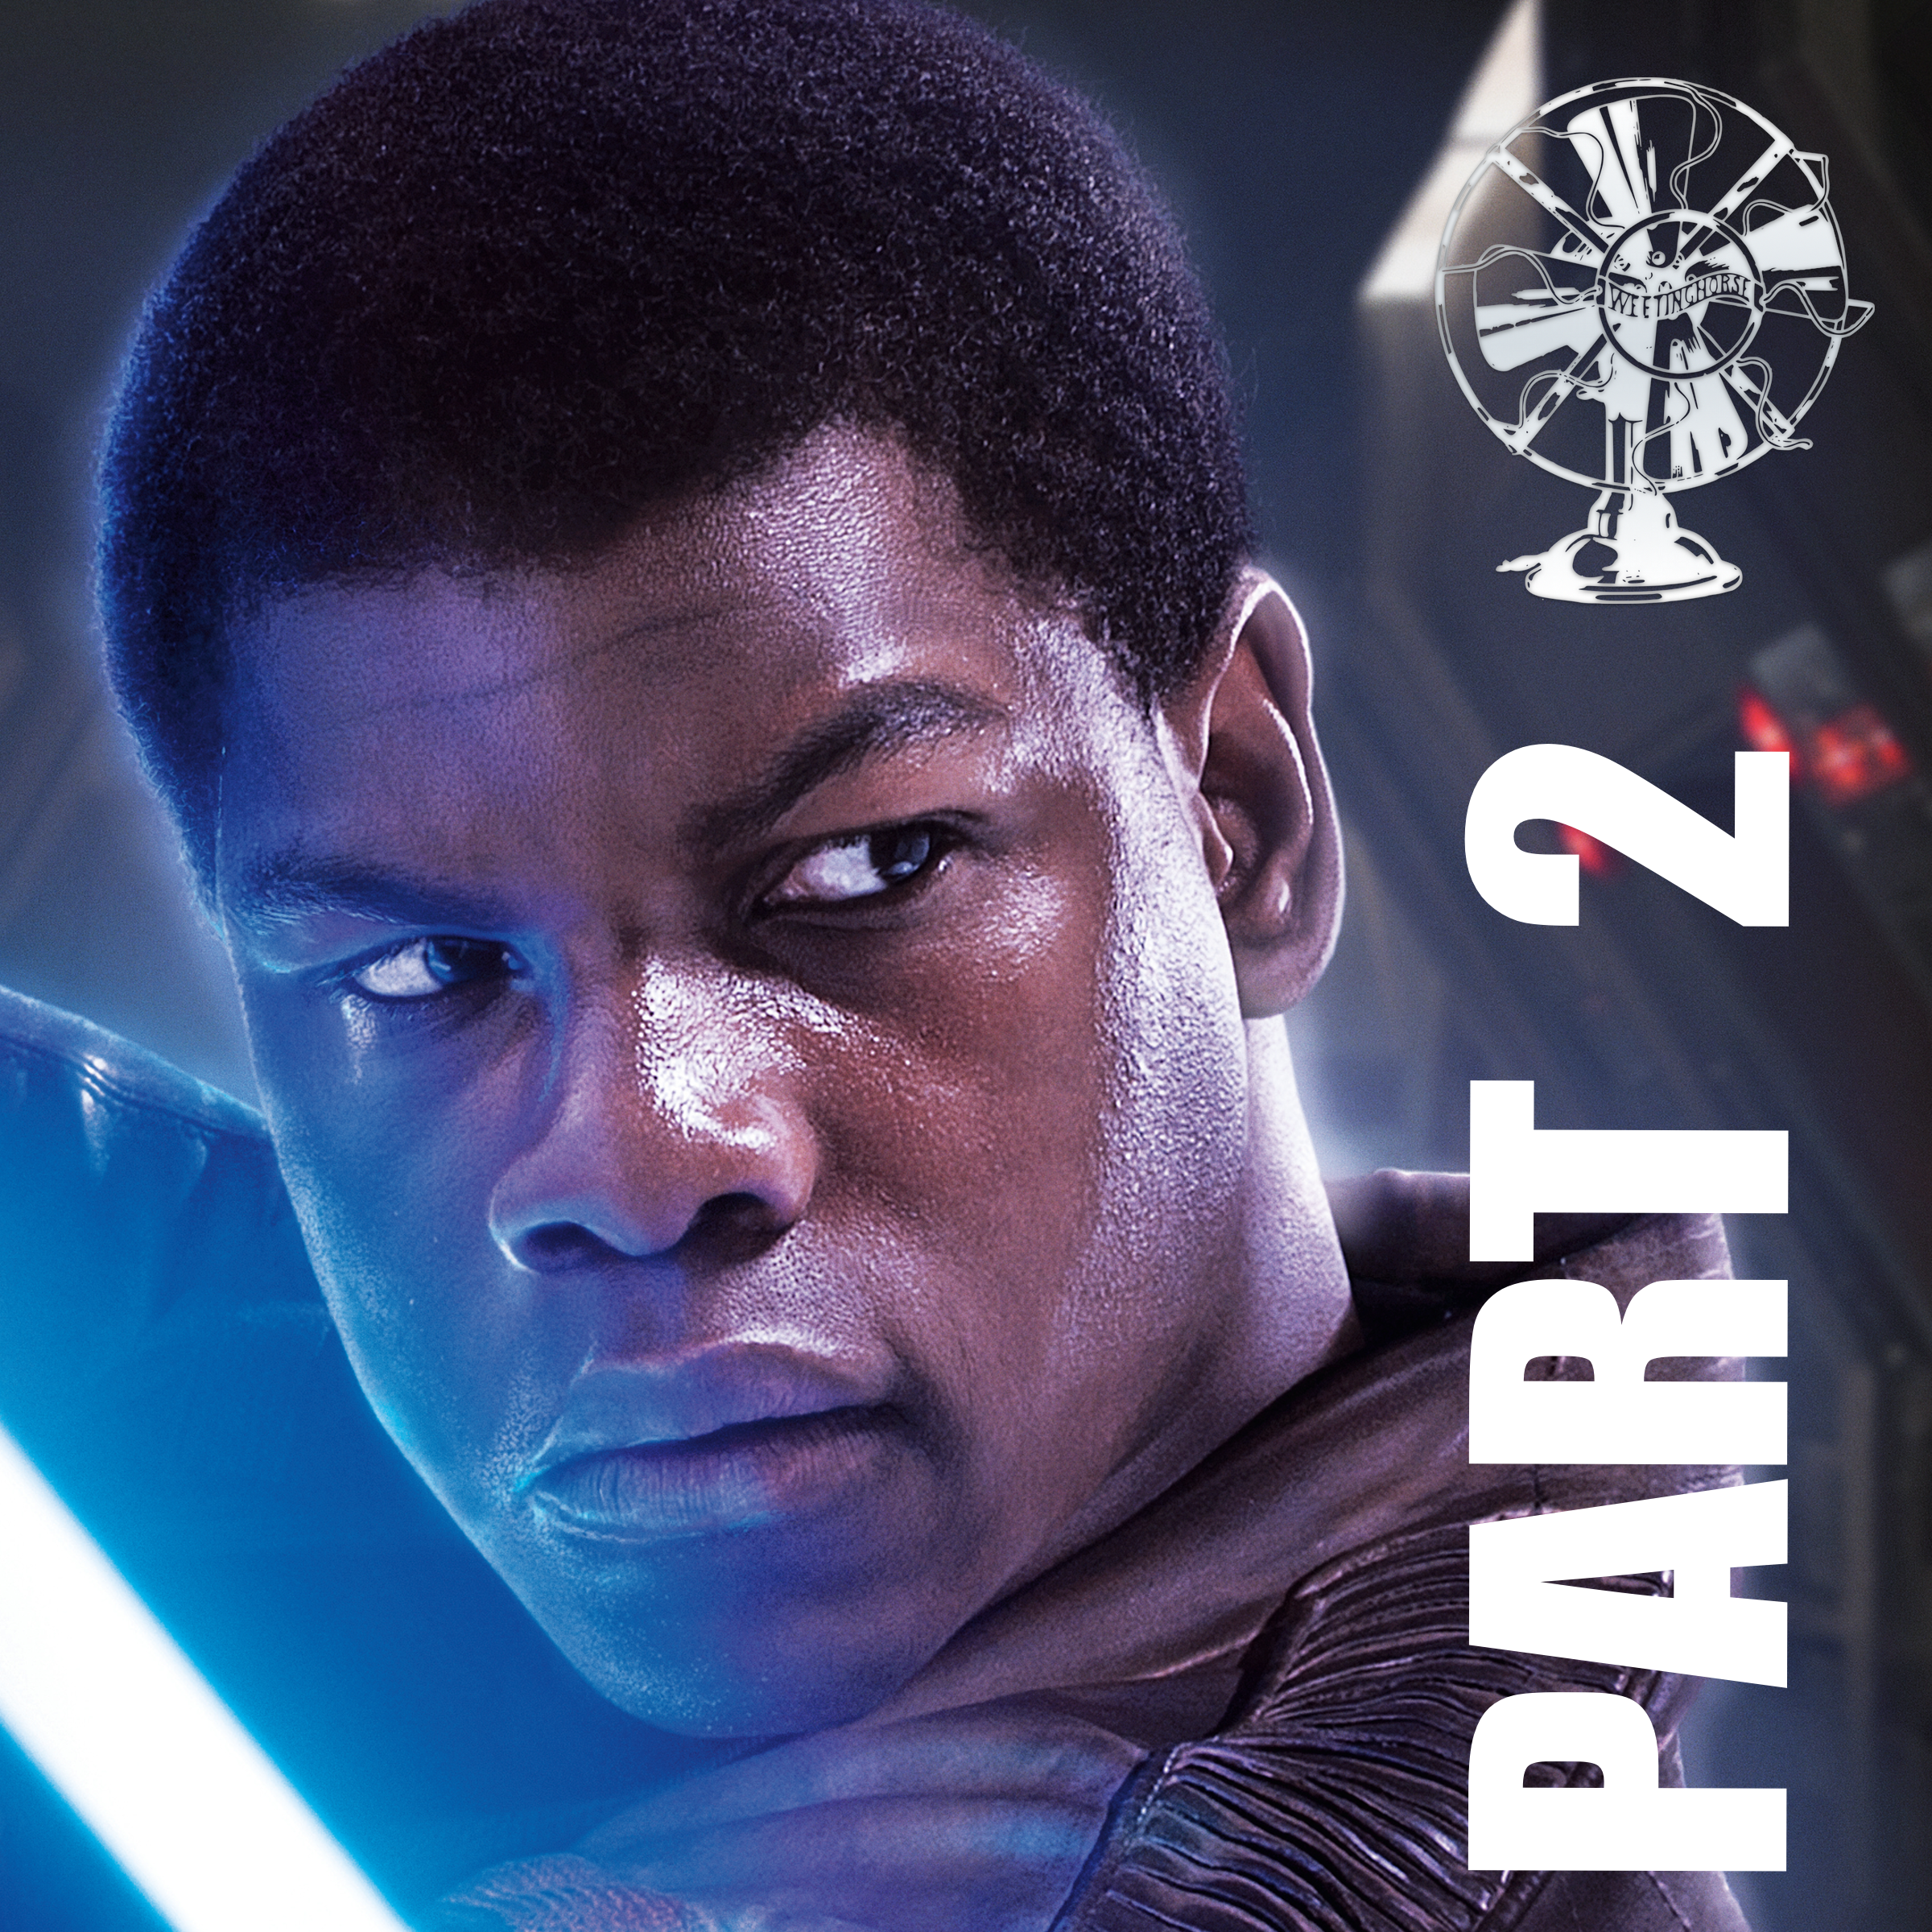 Episode 22B's cover: Finn holding a lightsaber.